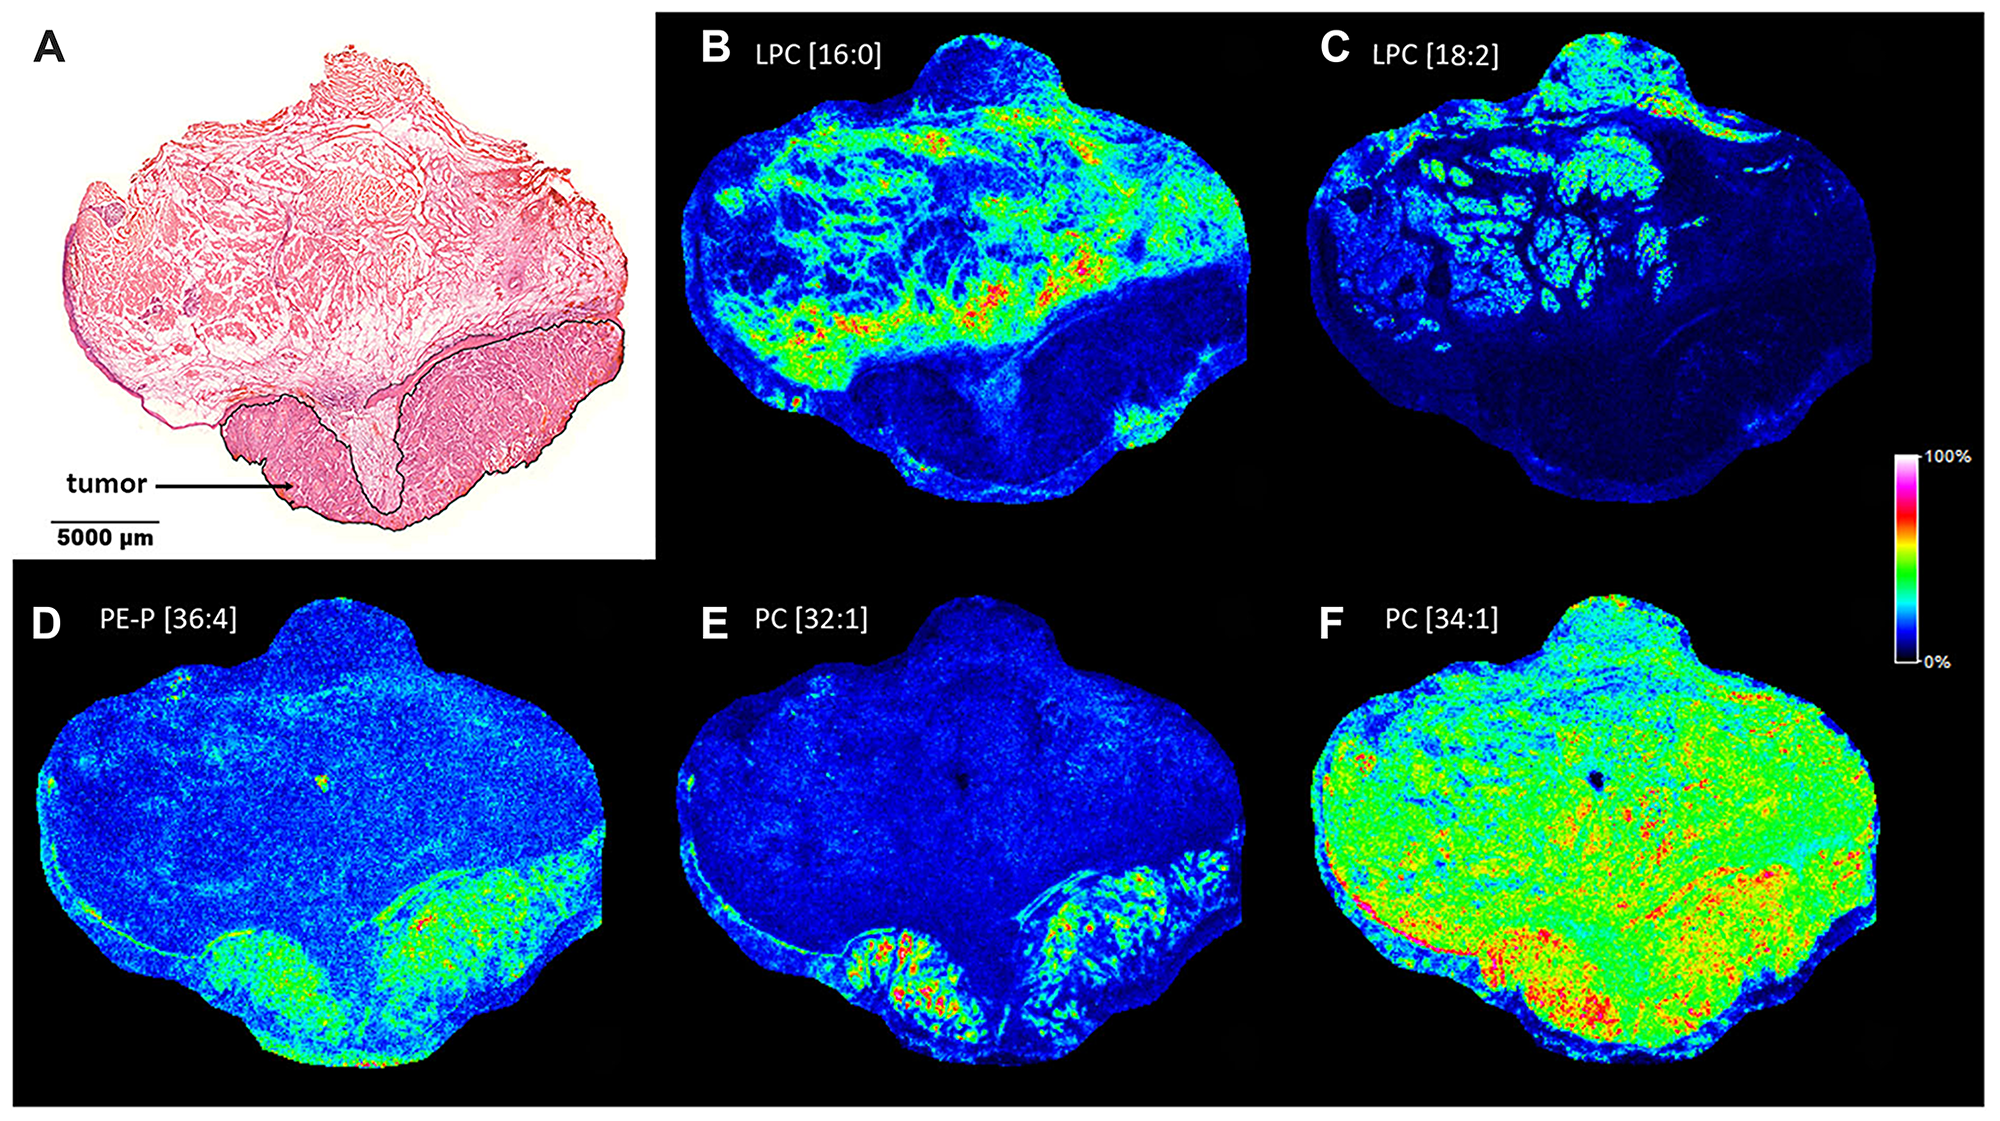 Lipid MS images of the HNSCC sample.